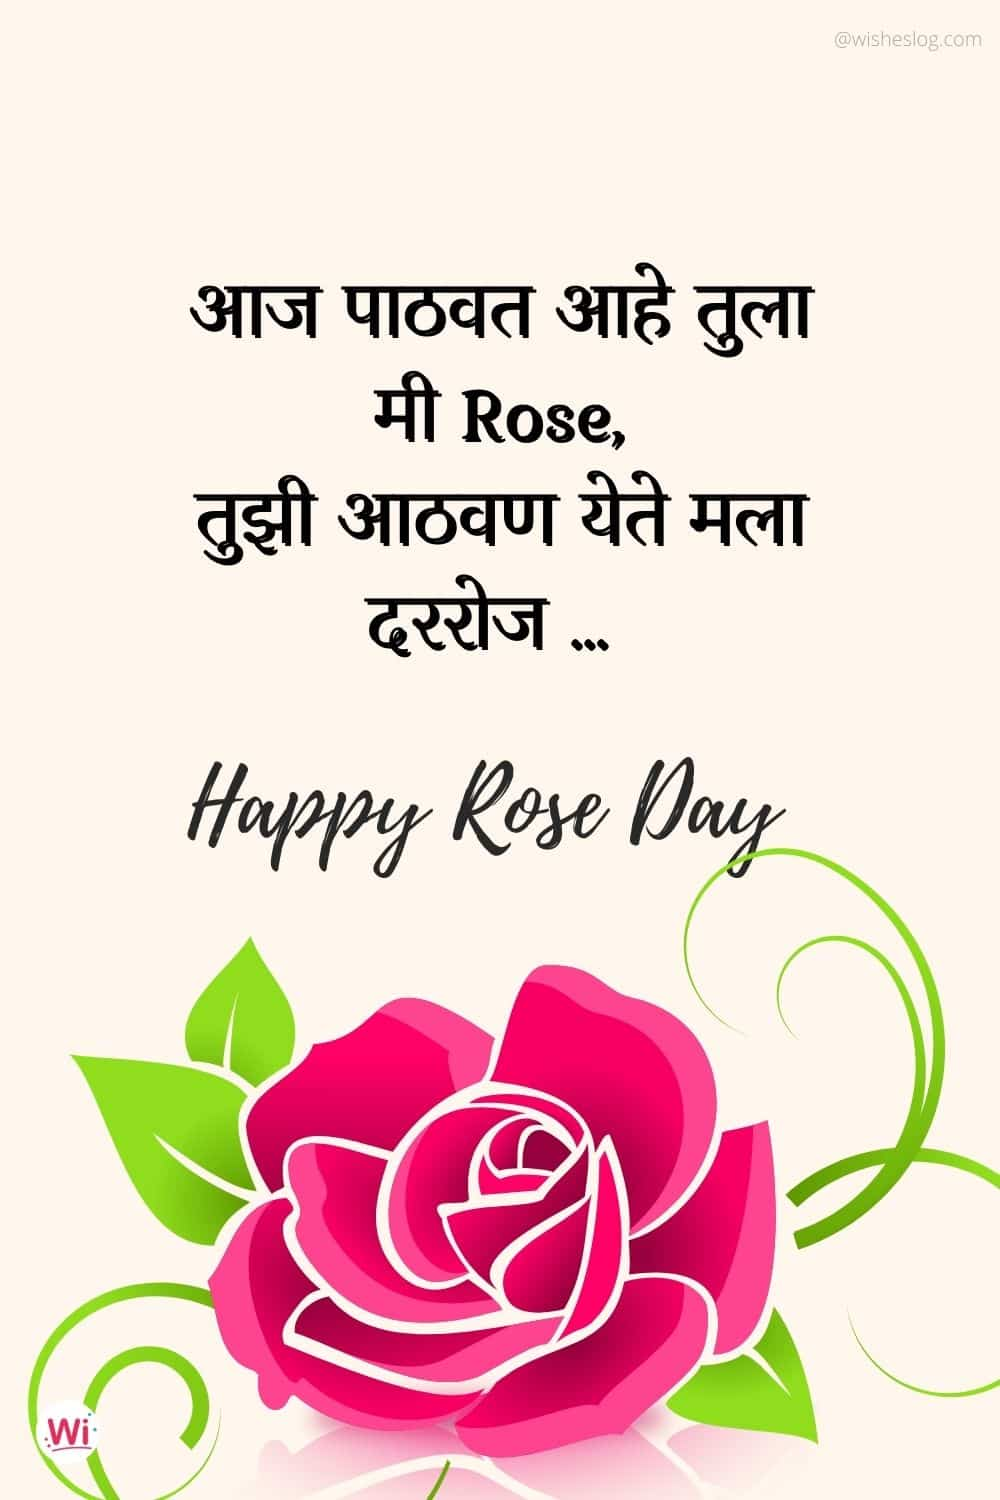 rose day wishes for girlfriend in marathi